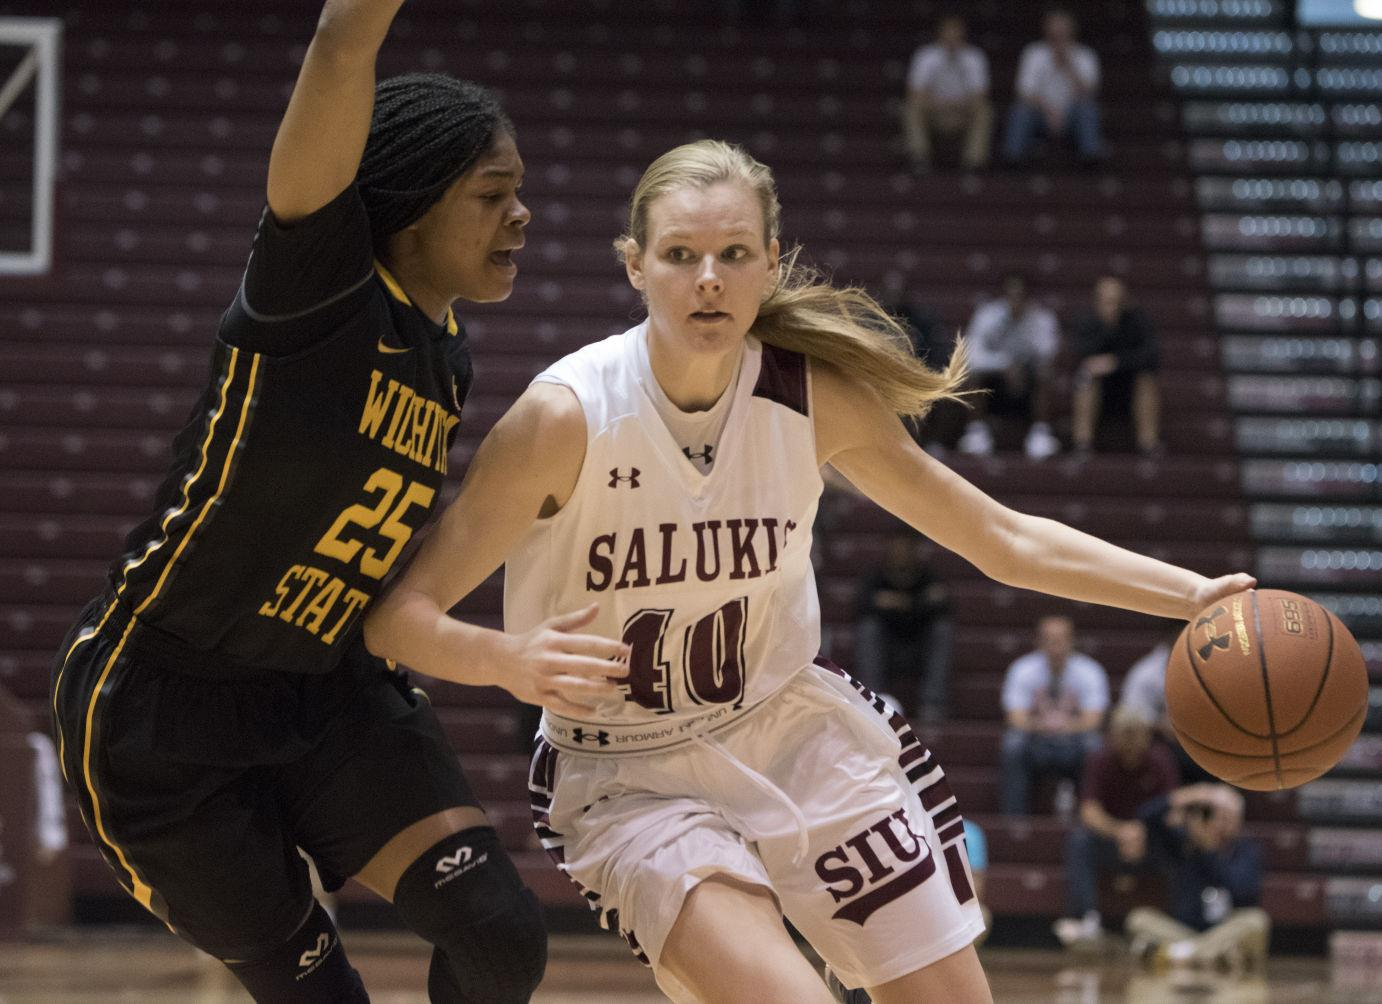 Then-junior guard/forward Carlie Corrigan keeps the ball away from the defense during SIU's victory against the Shockers on Sunday, Feb. 21, 2016 at SIU Arena. Corrigan scored five points with two rebounds and two assists, aiding the Salukis in a 80-66 victory over the Shockers.